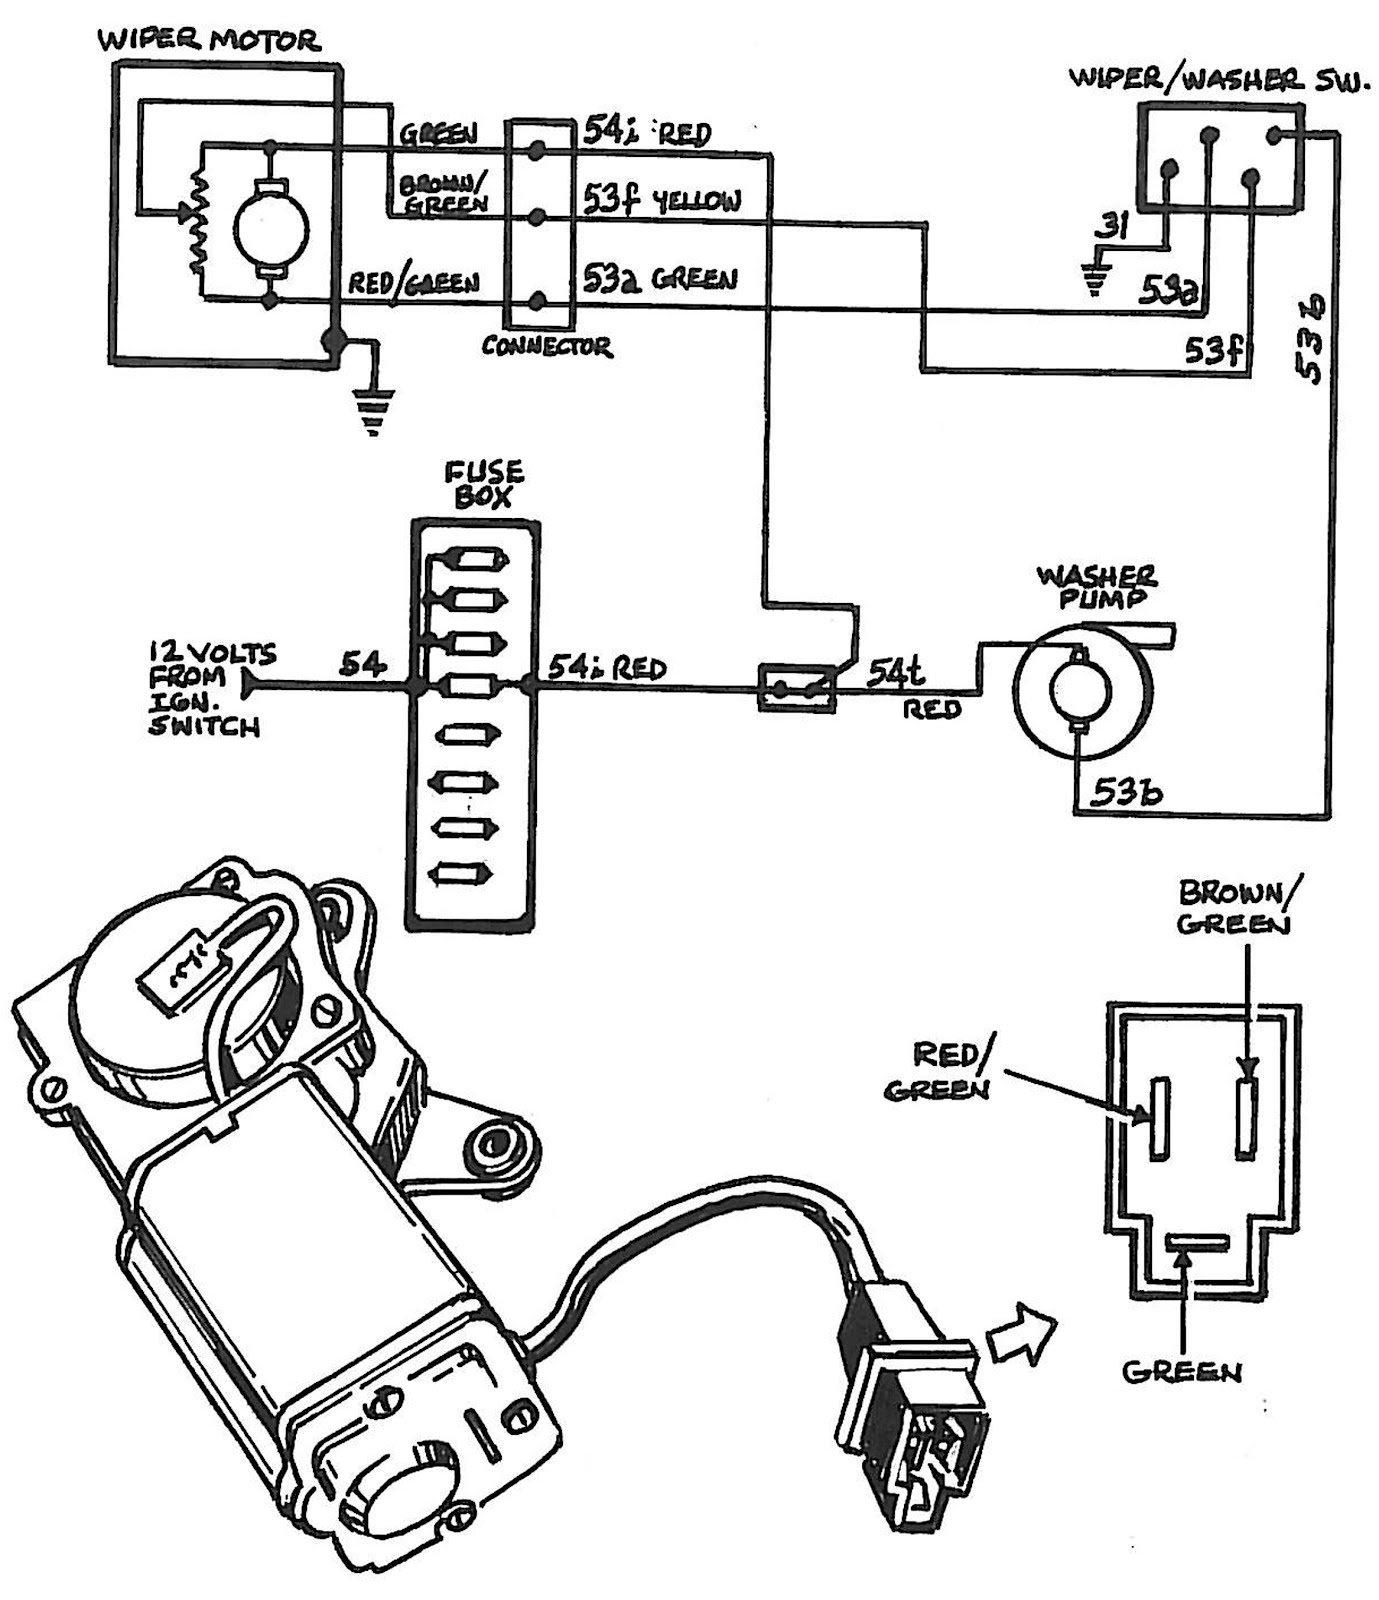 1966 Buick Skylark Wiring Harness Just Wirings Diagram 1970 Images Gallery